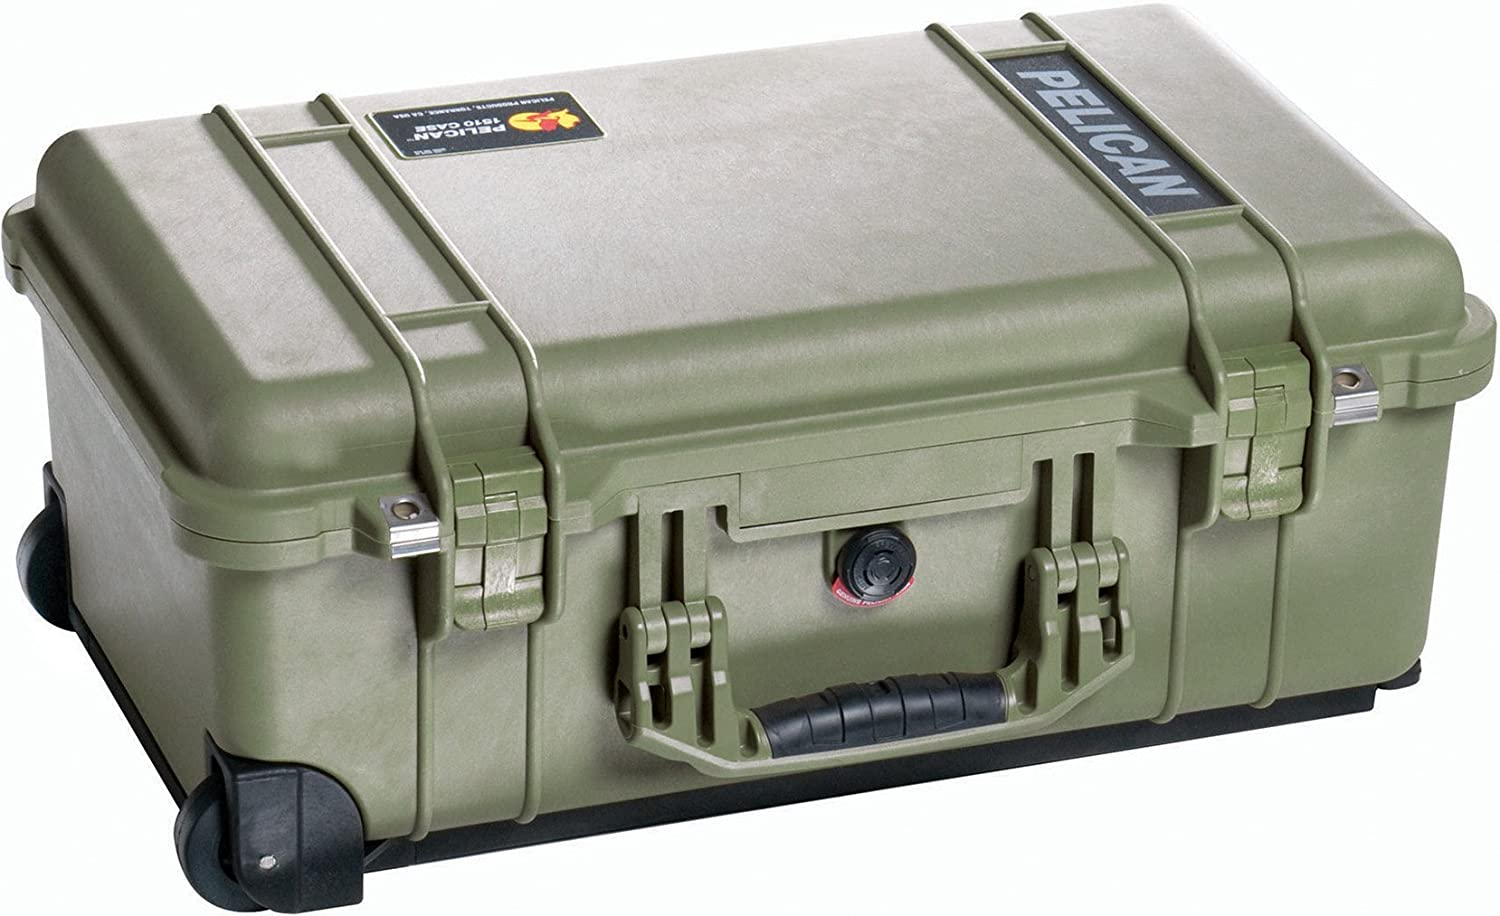 Pelicanペリカン Protector Case 1514 with Padded Dividers Od Green[並行輸入品] B000YA08DA